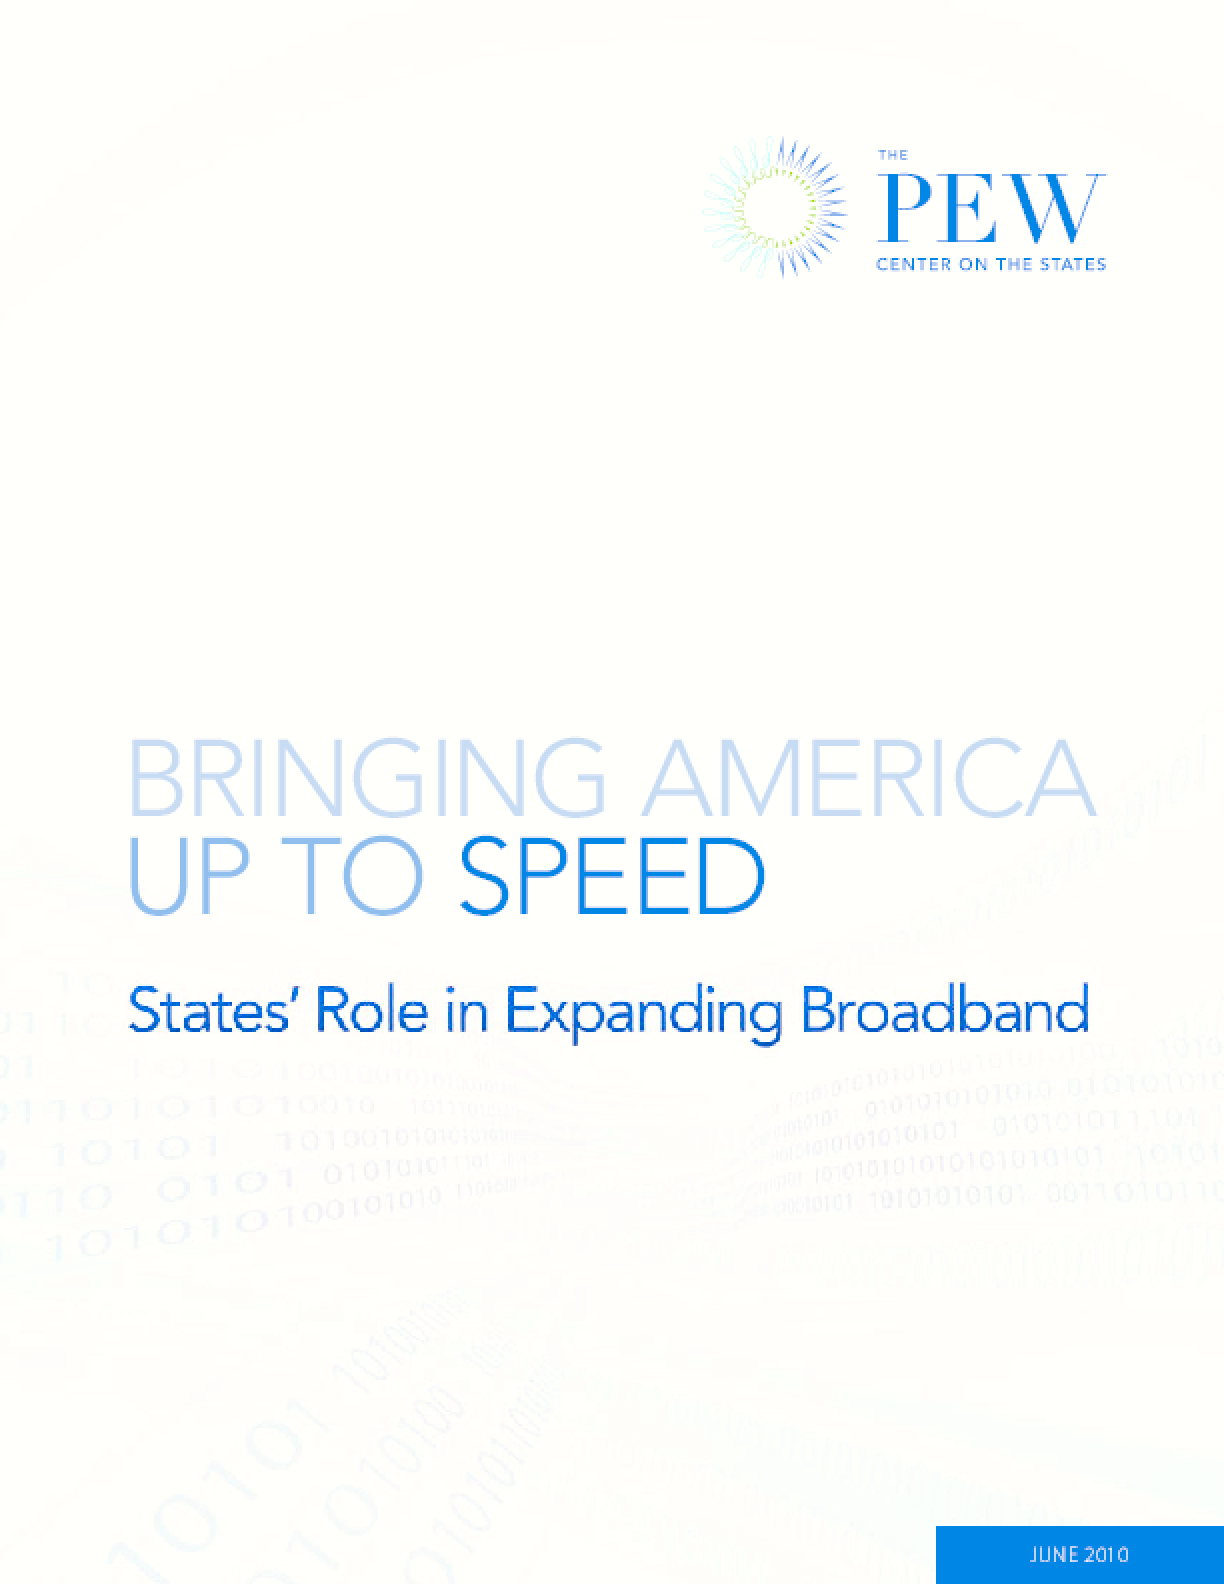 Bringing America Up to Speed: States' Role in Expanding Broadband